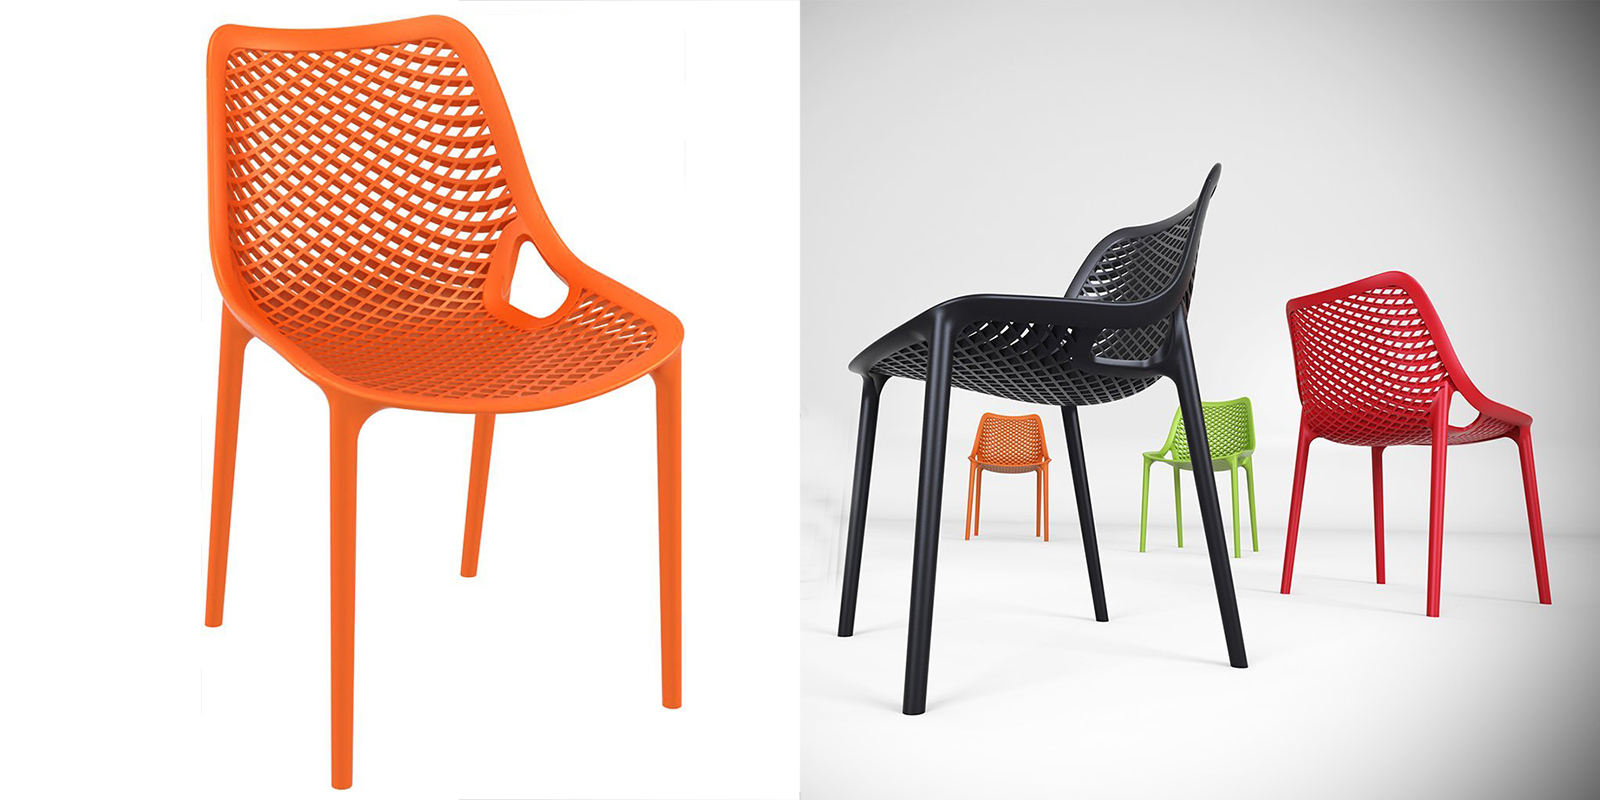 Patio Chair - Stacking Dining Chair